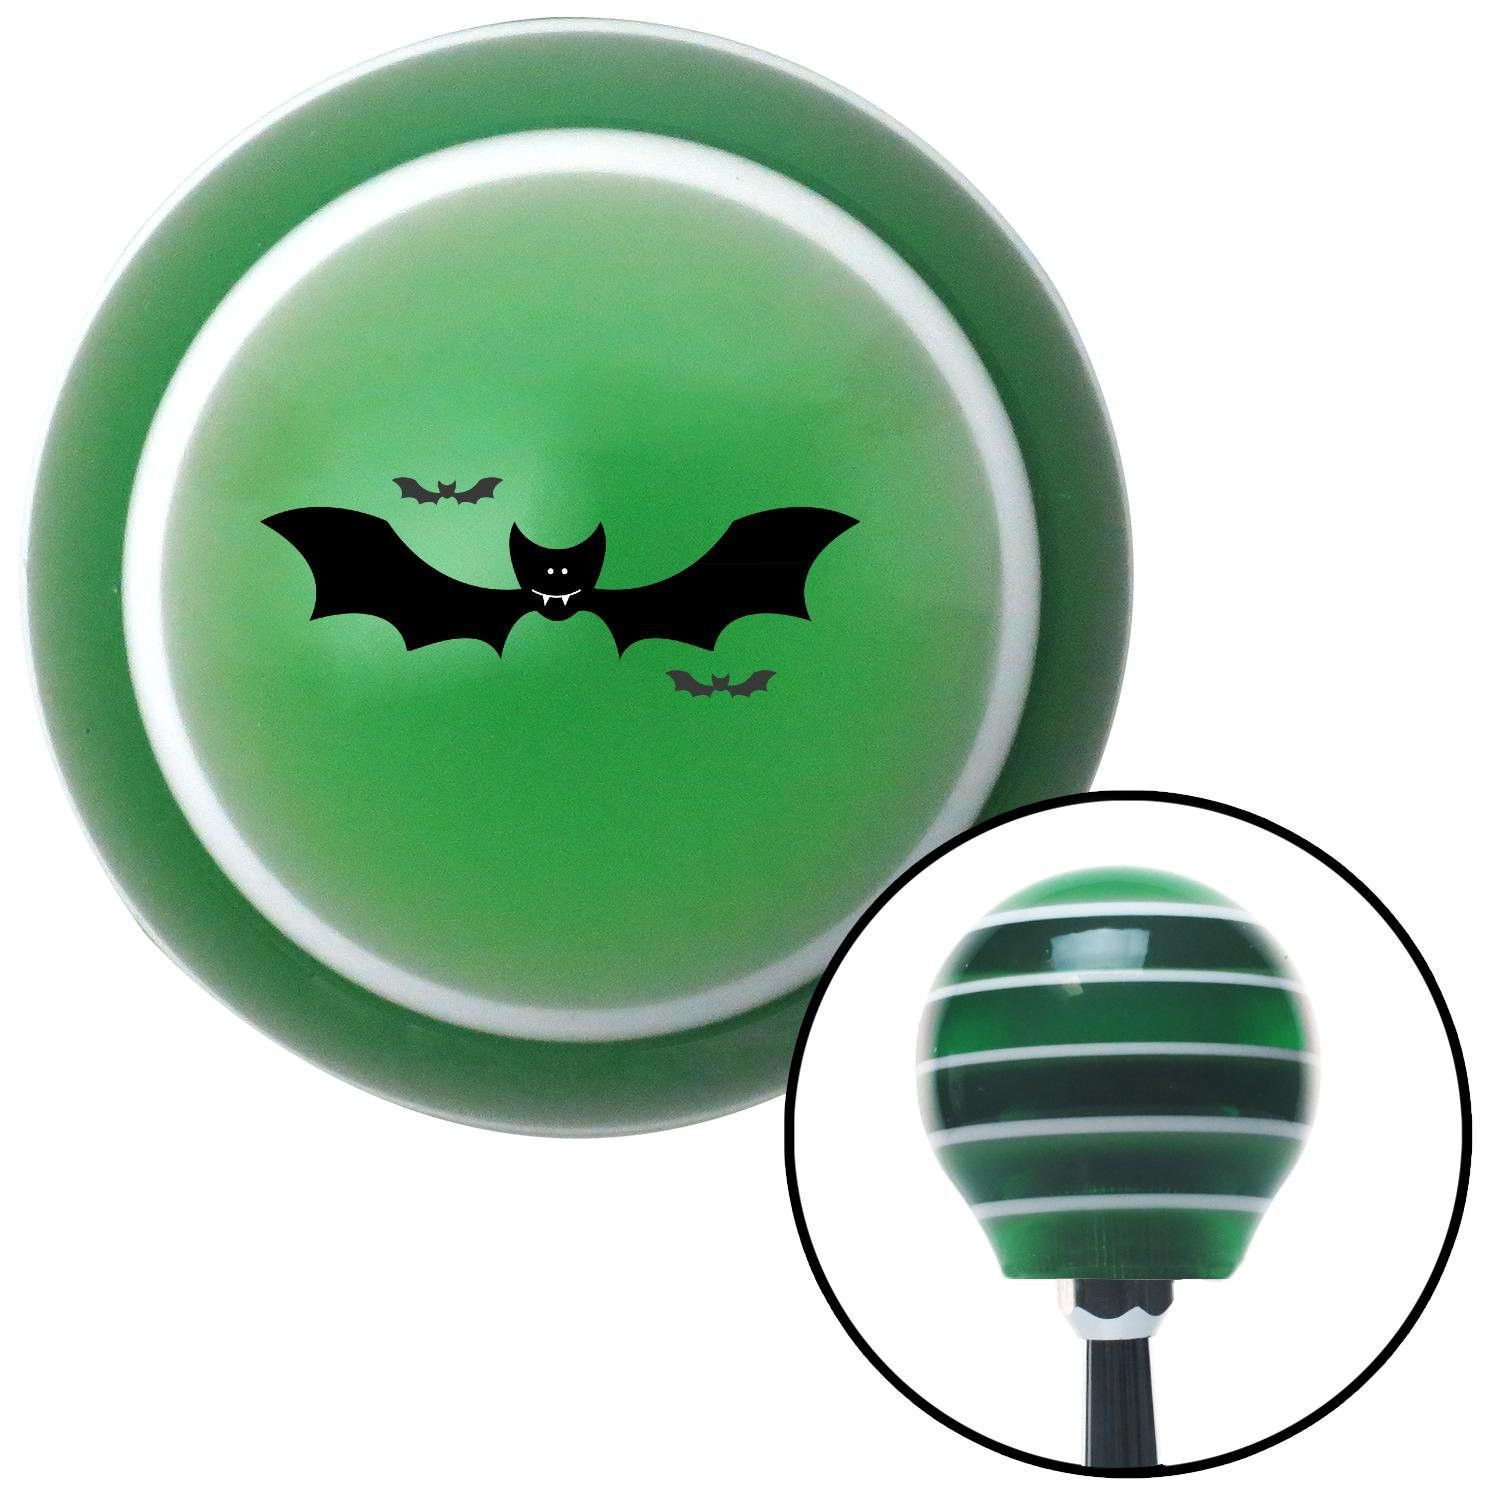 Bats Green Stripe Shift Knob with M16 x 15 Insert